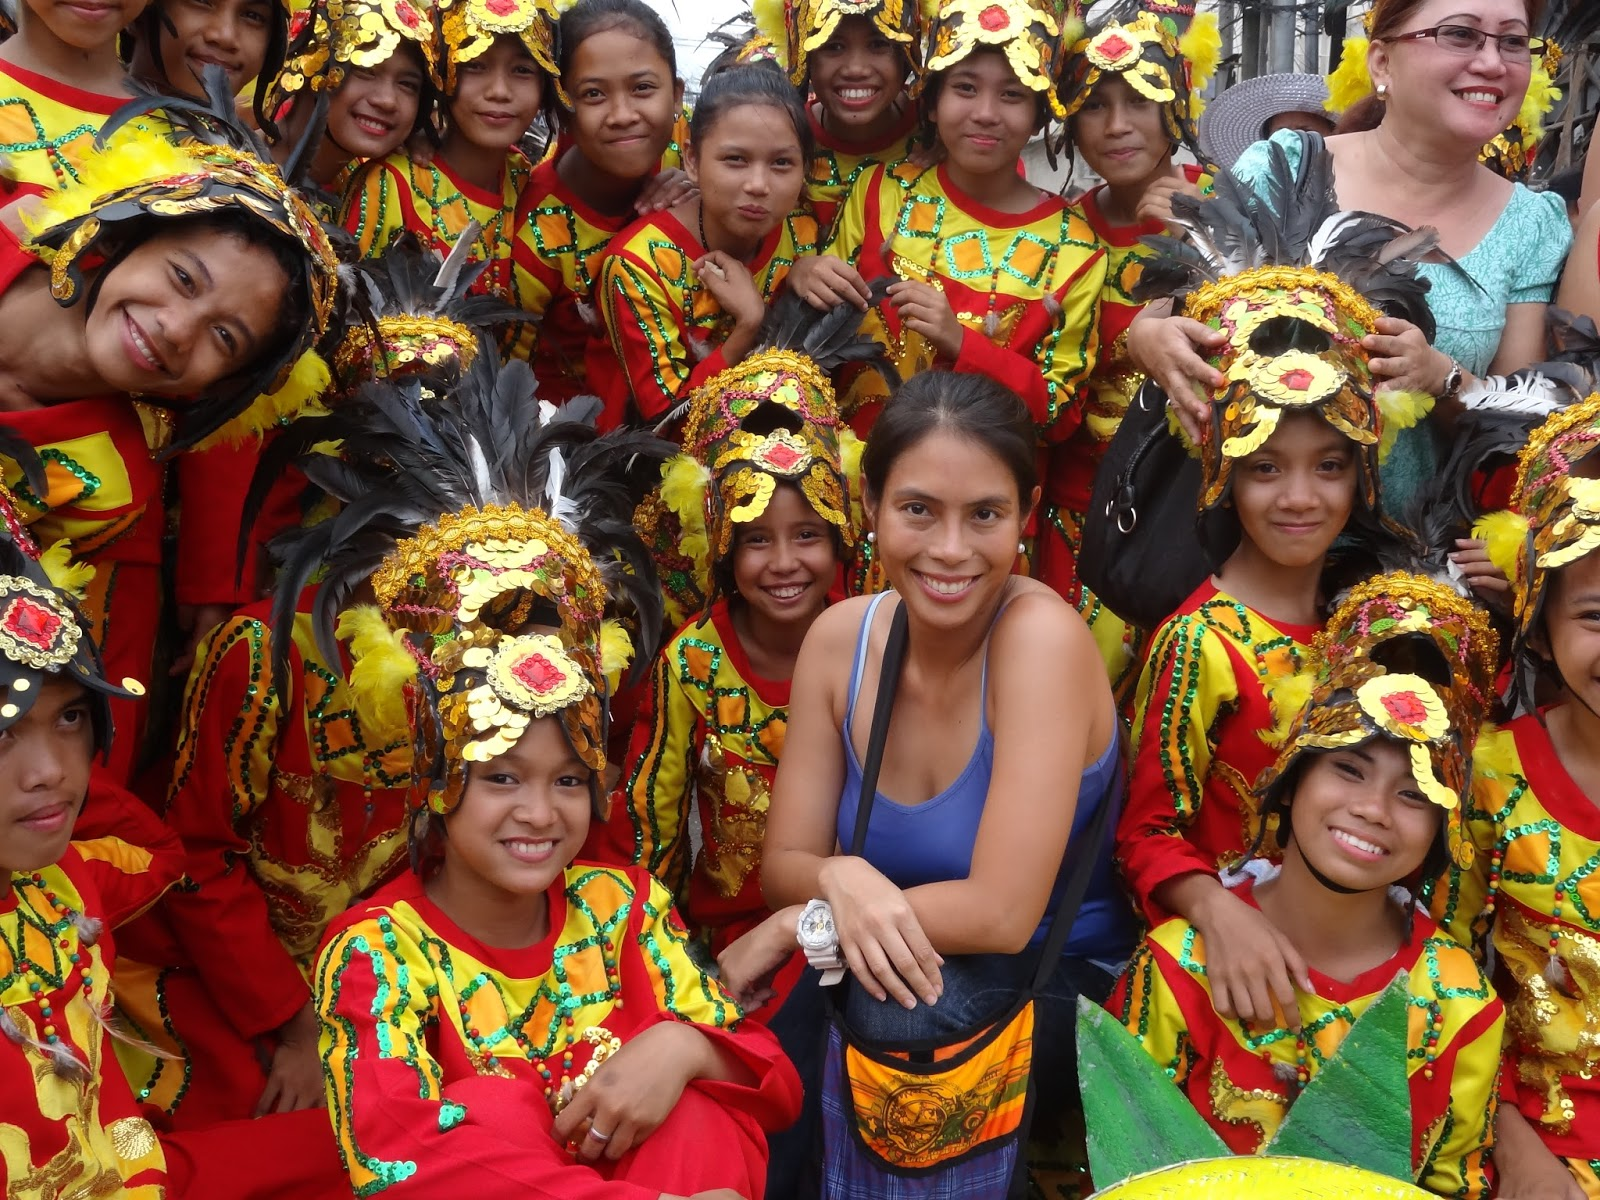 festivals in davao region essay Read this essay on bukidnon come browse our large digital warehouse of free sample essays  fiestas and festivals mindanao also exhibits a rich and diverse culture along with its colorful festivals  magahat, sarangani manobo, southern cotabato and davao manobo, tasaday, tagabawa, tigwa manobo,, ubo of the mt apo region in davao, western.